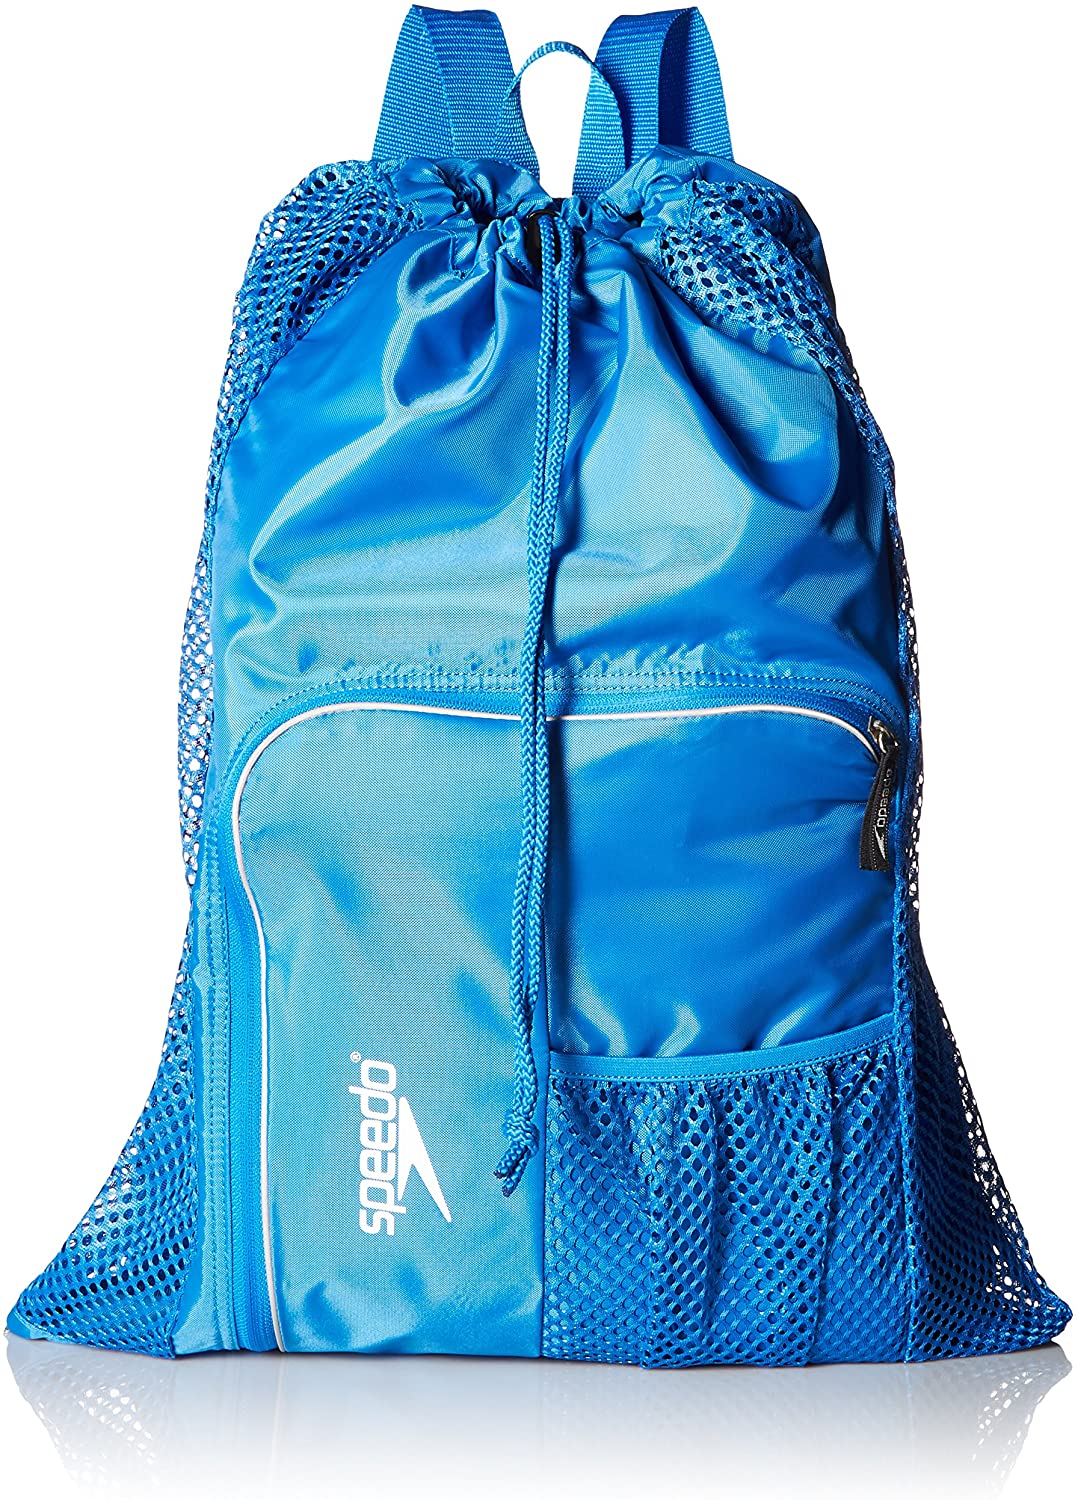 Speedo Unisex-Adult Deluxe Ventilator Mesh Equipment Bag